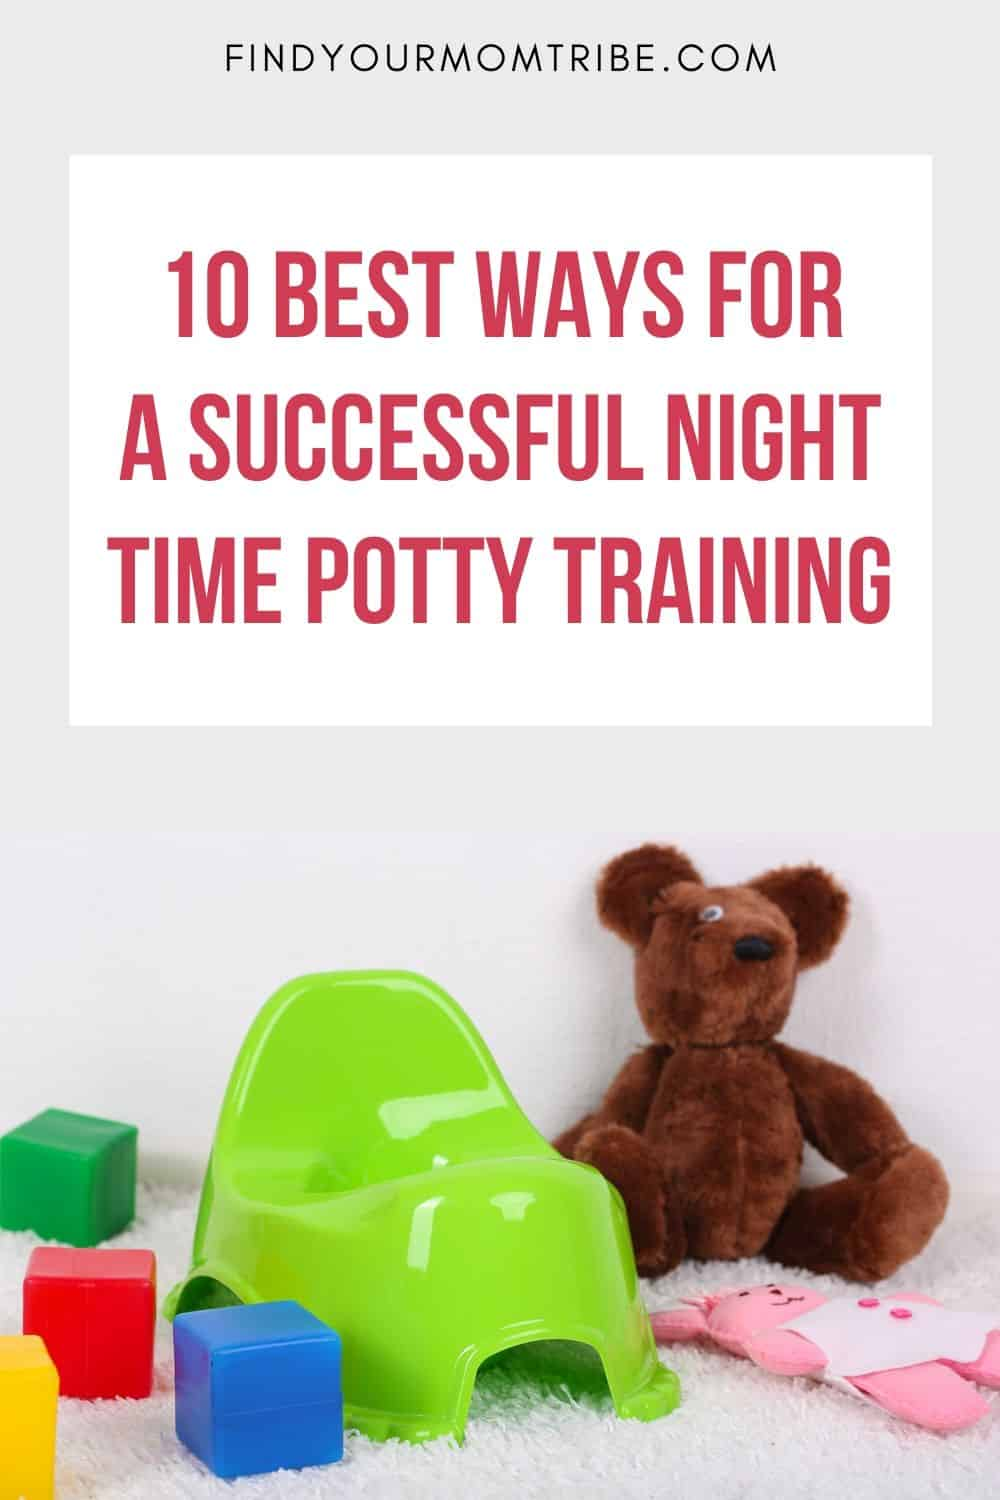 10 Best Ways For A Successful Night Time Potty Training Pinterest